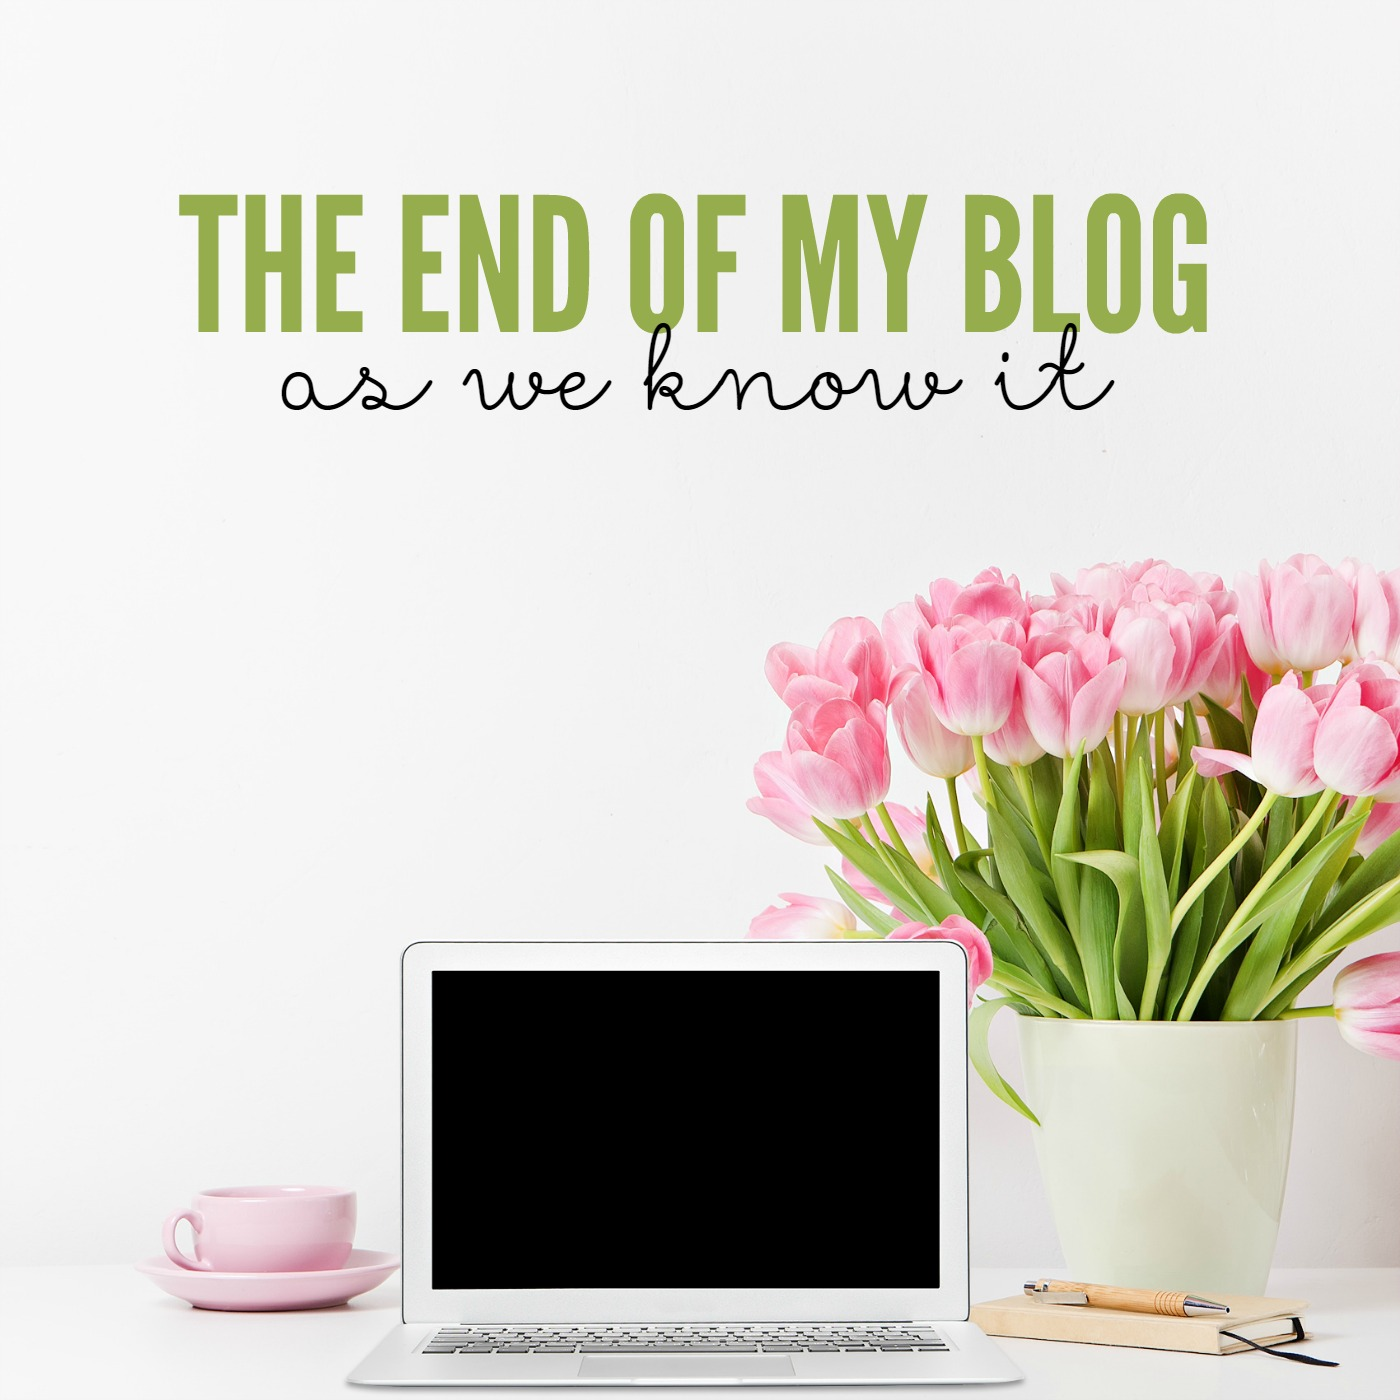 The end of my blog as we know it, and 2017 reader's survey.